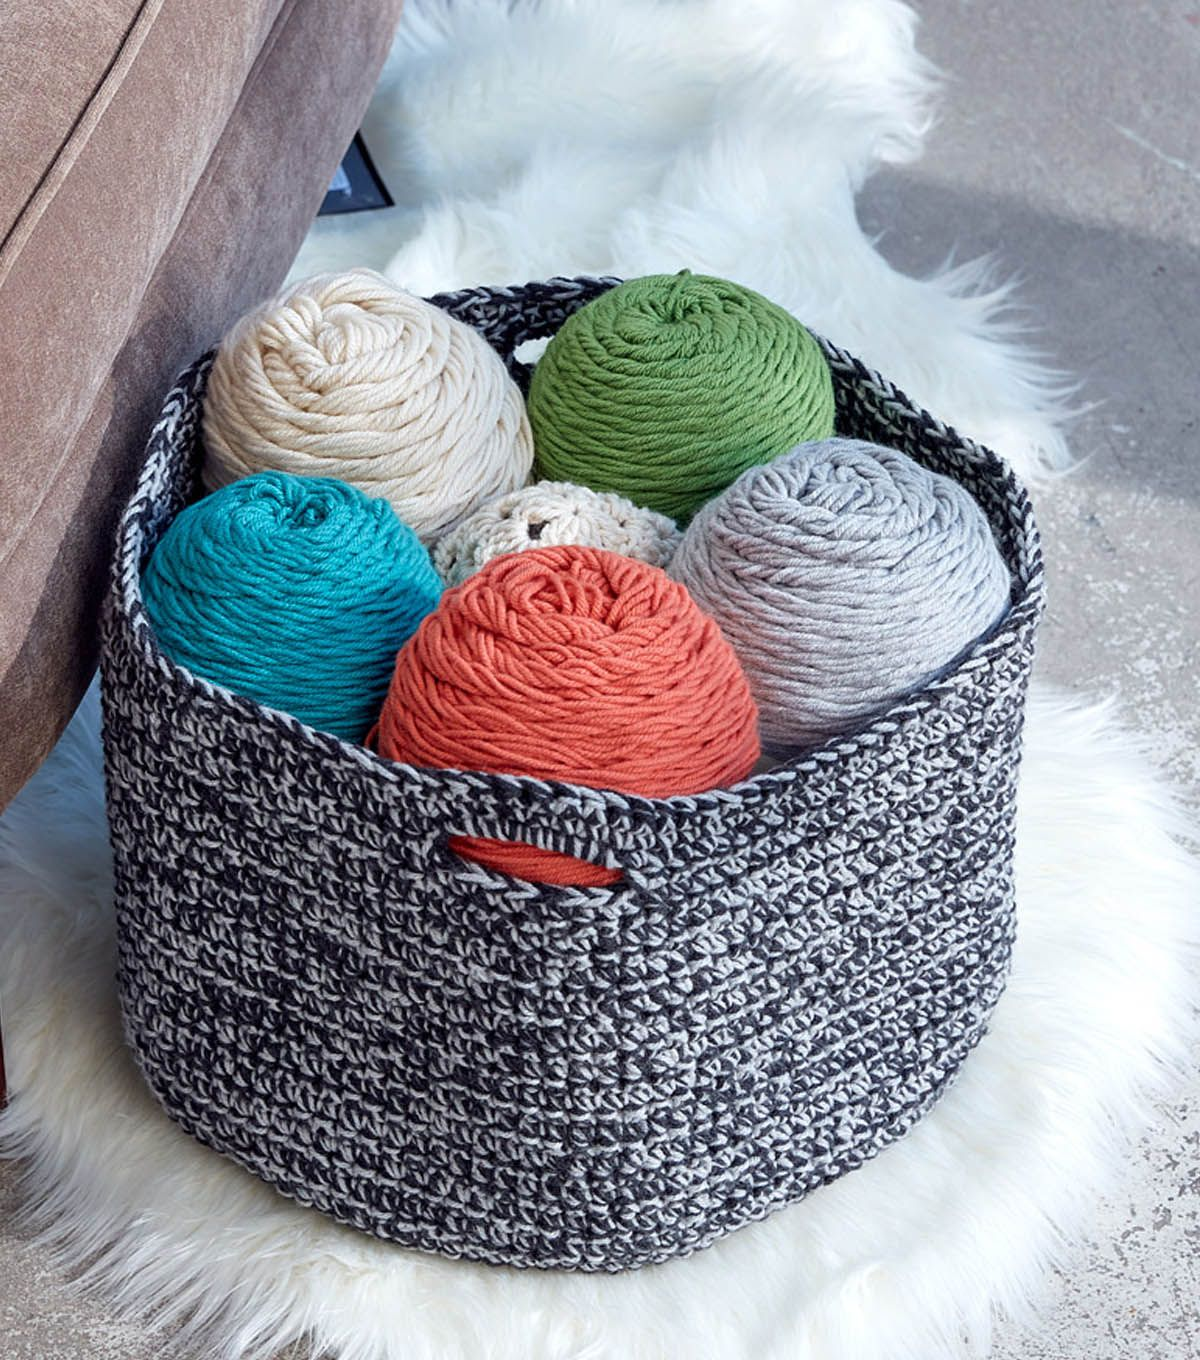 How To Crochet A Double Good Crochet Basket | Crochet | Pinterest ...